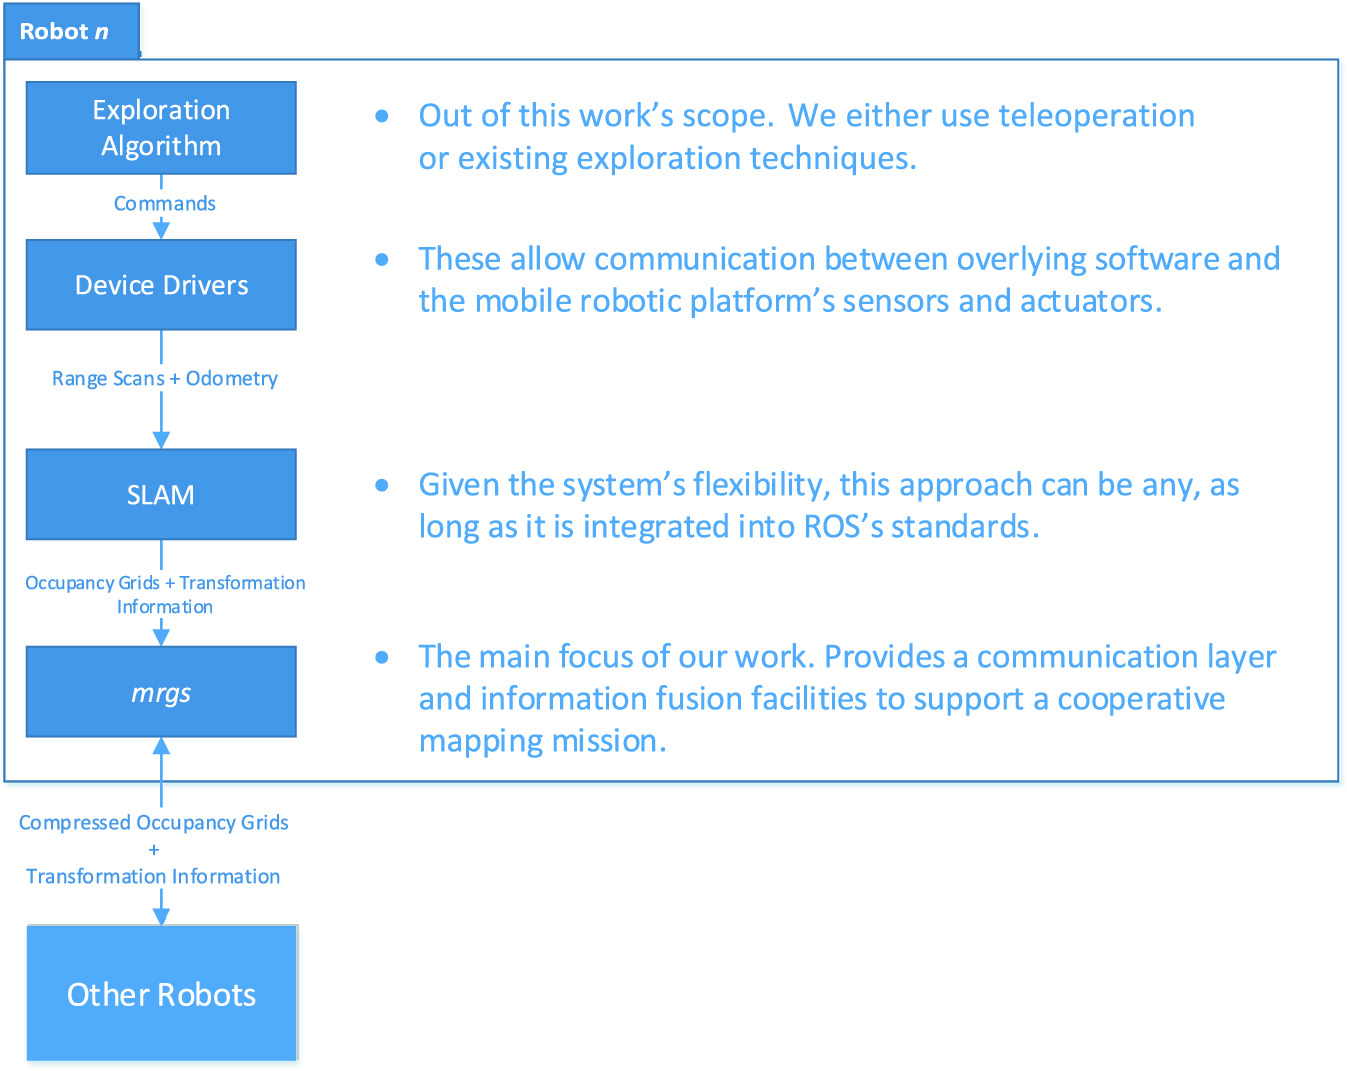 mrgs: A Multi-Robot SLAM Framework for ROS with Efficient ...